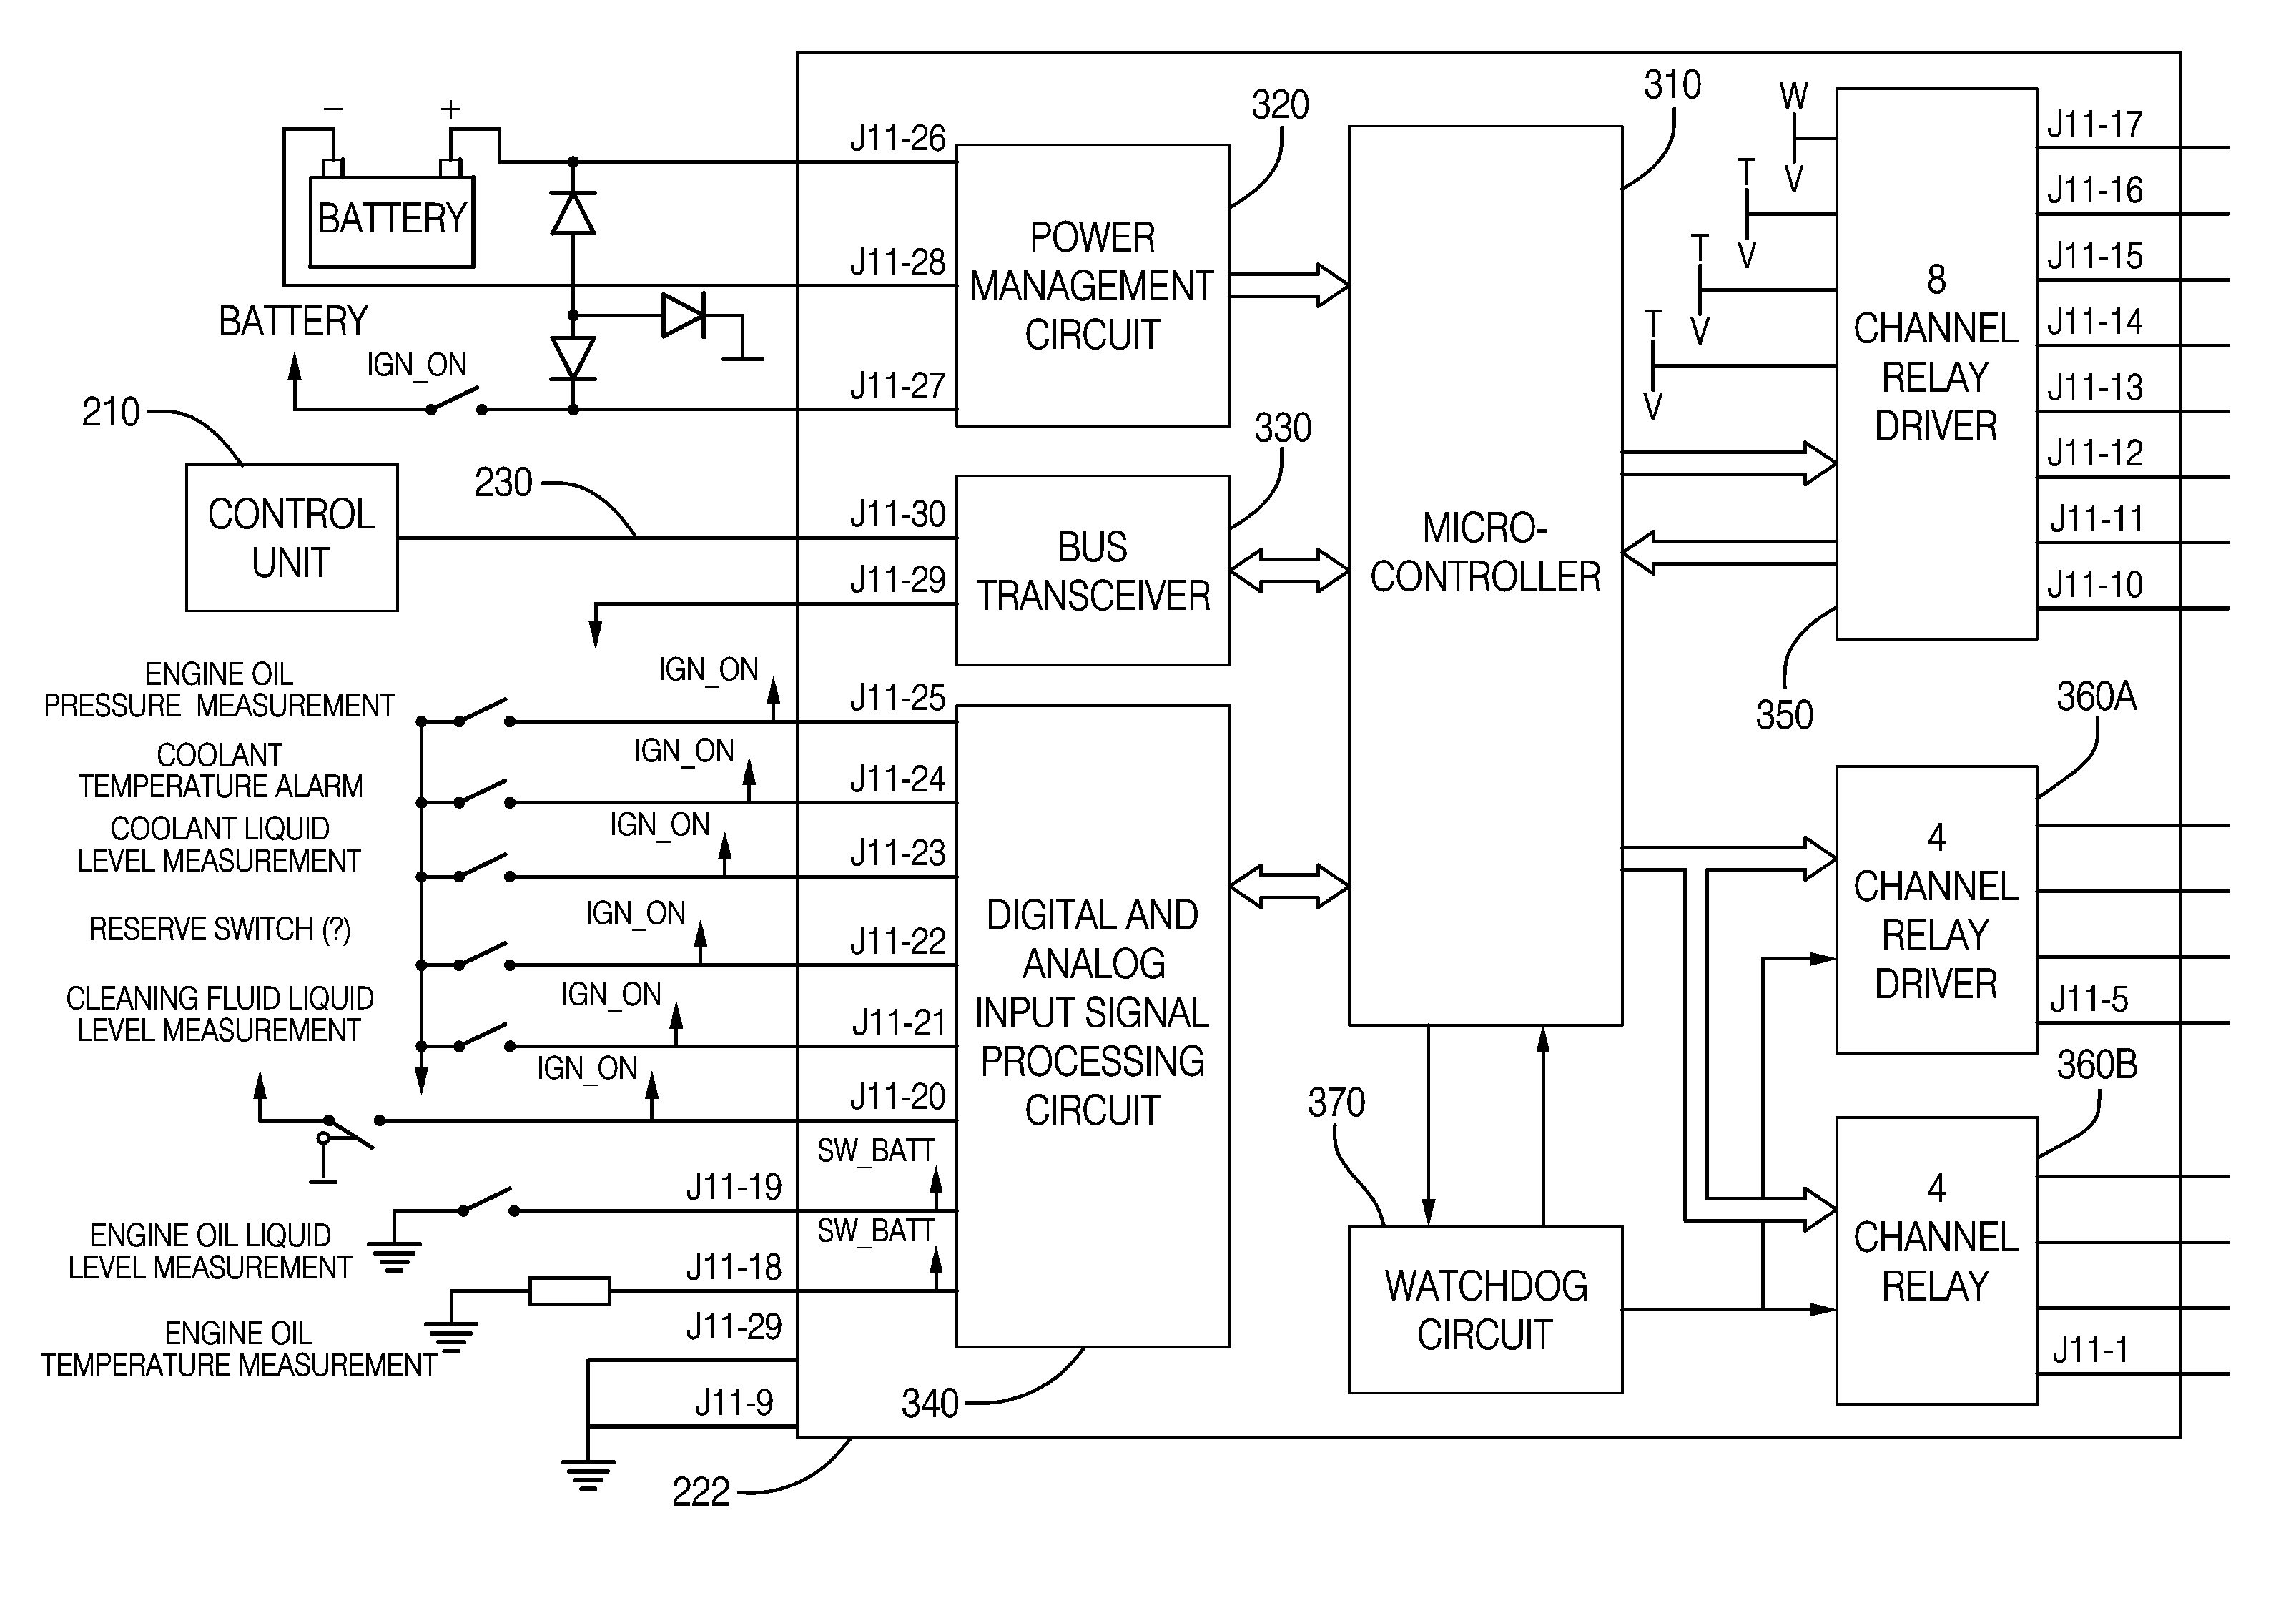 US08650351 20140211 D00000 patent us8650351 electrical power distribution system for a gentex 313 wiring diagram at sewacar.co